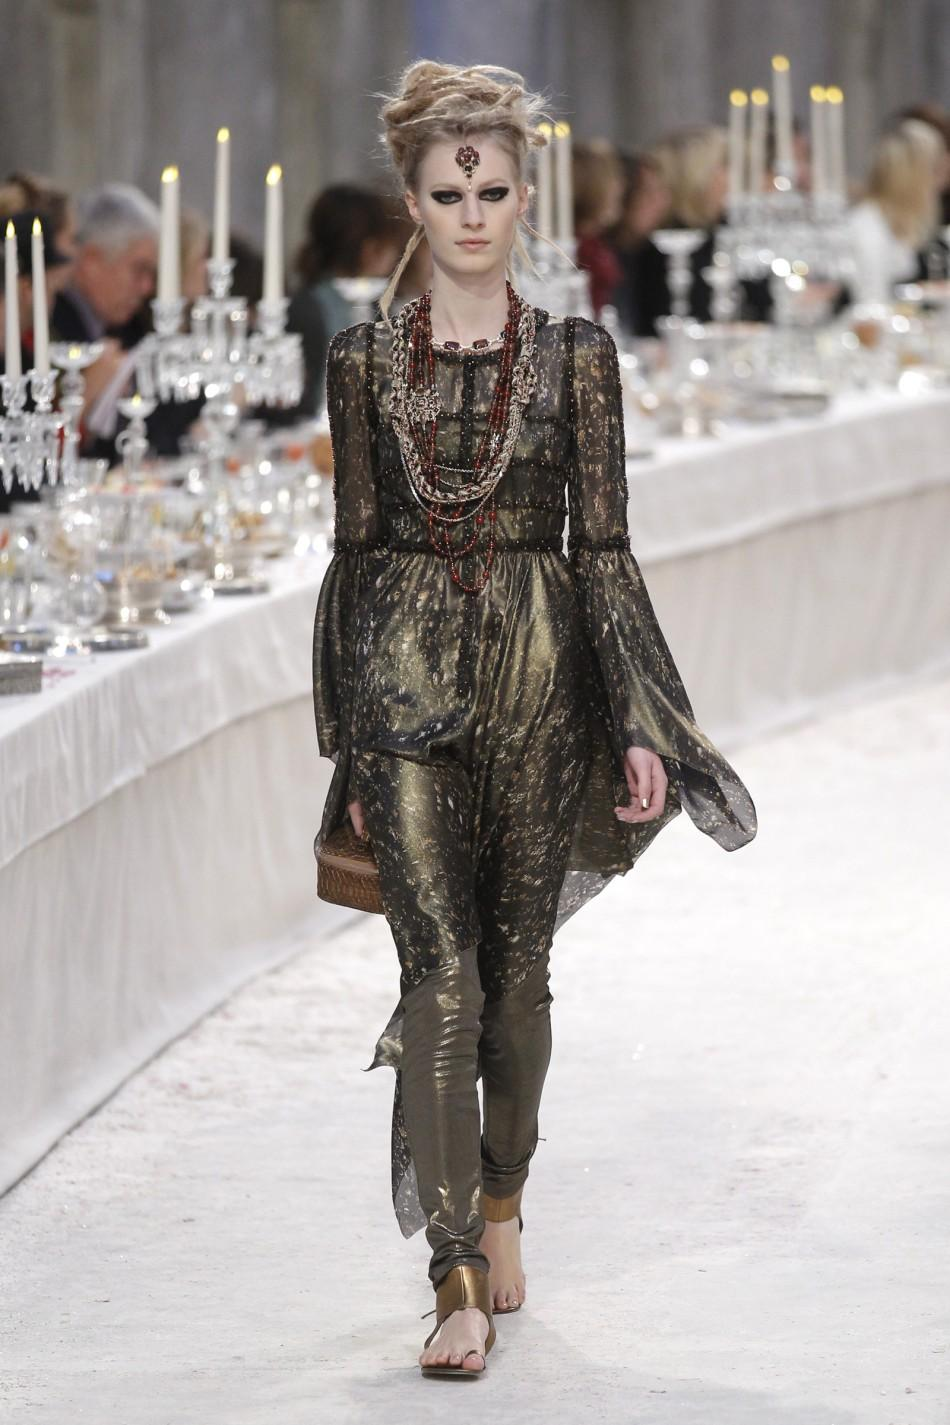 Metiers D'Art Show for Chanel fashion house in Paris